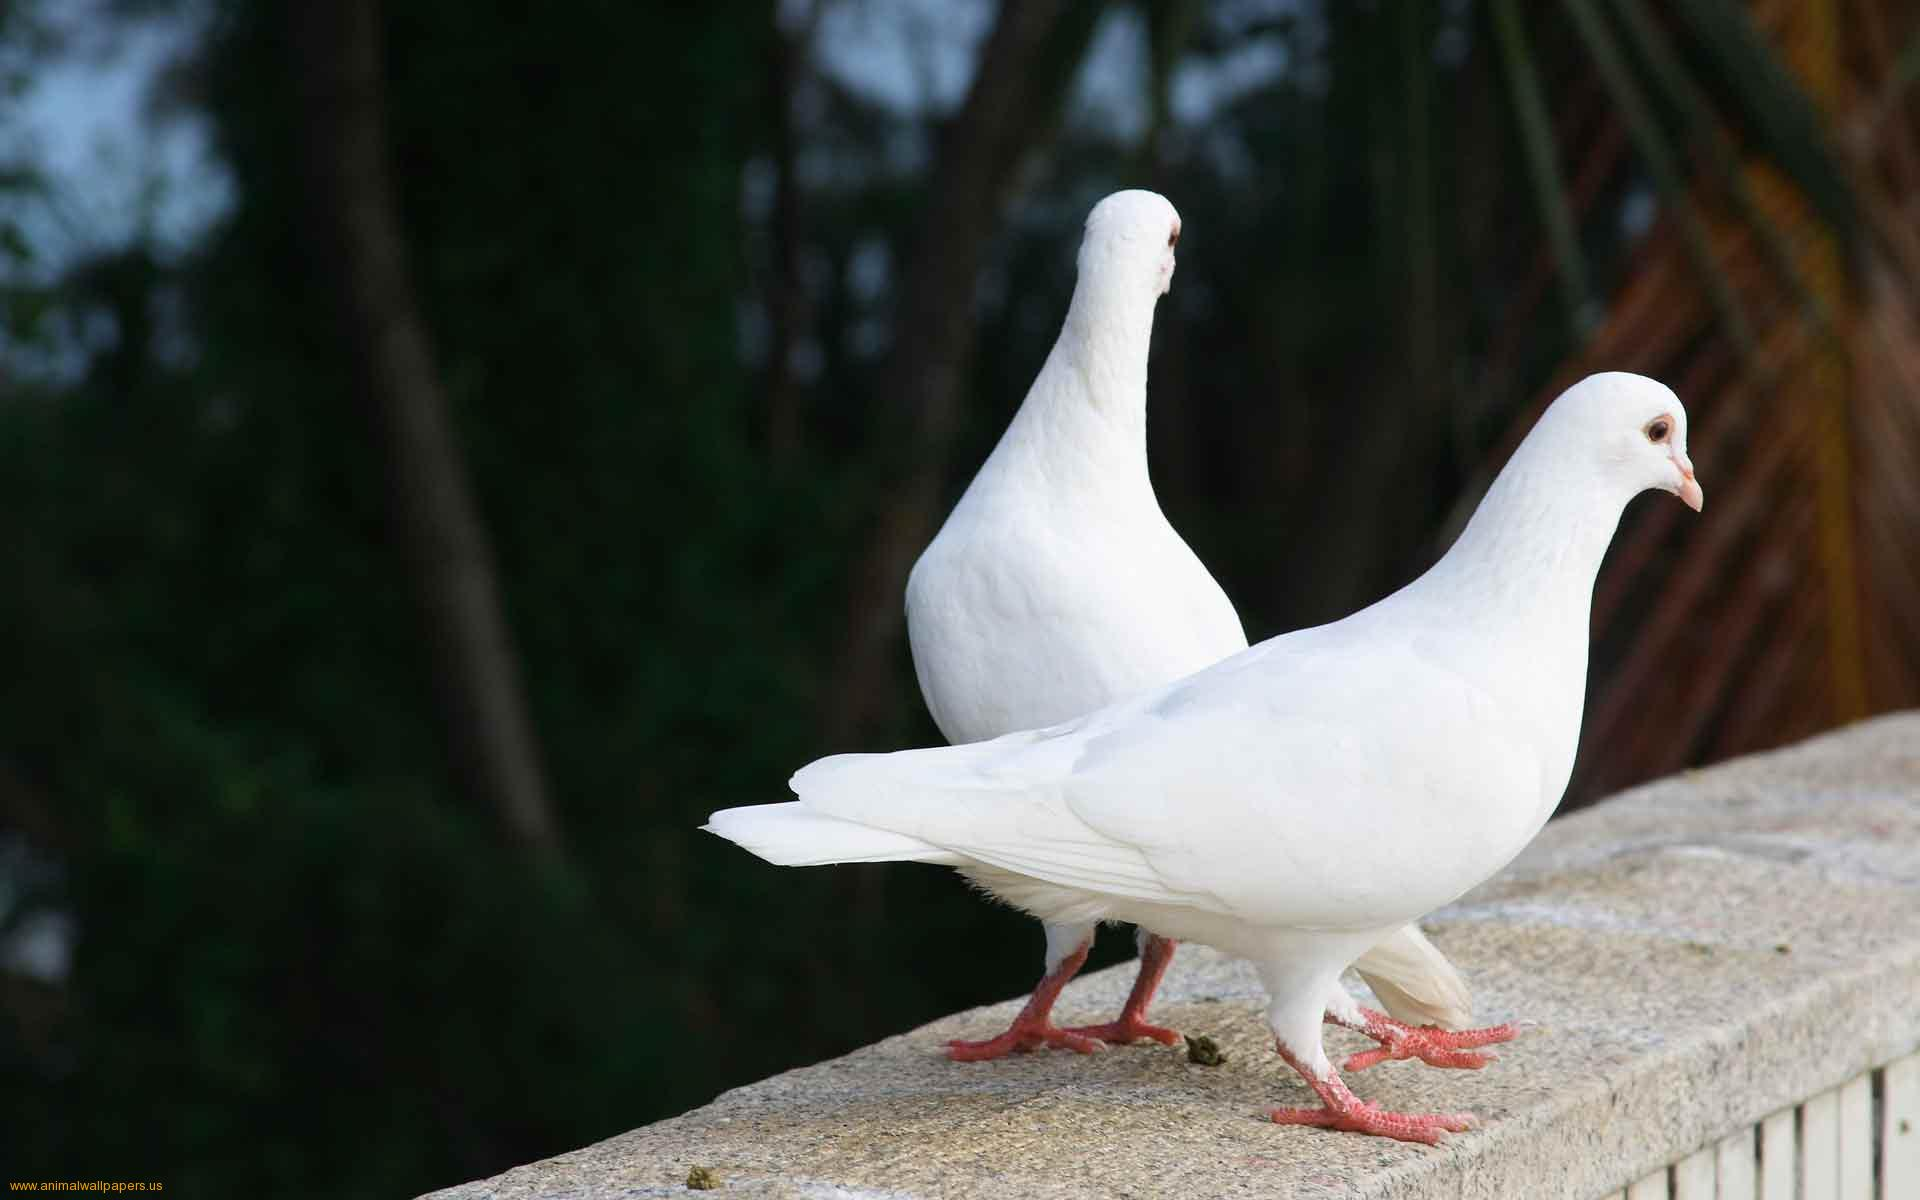 Full Full HD, Pigeon, Margy Coulombe